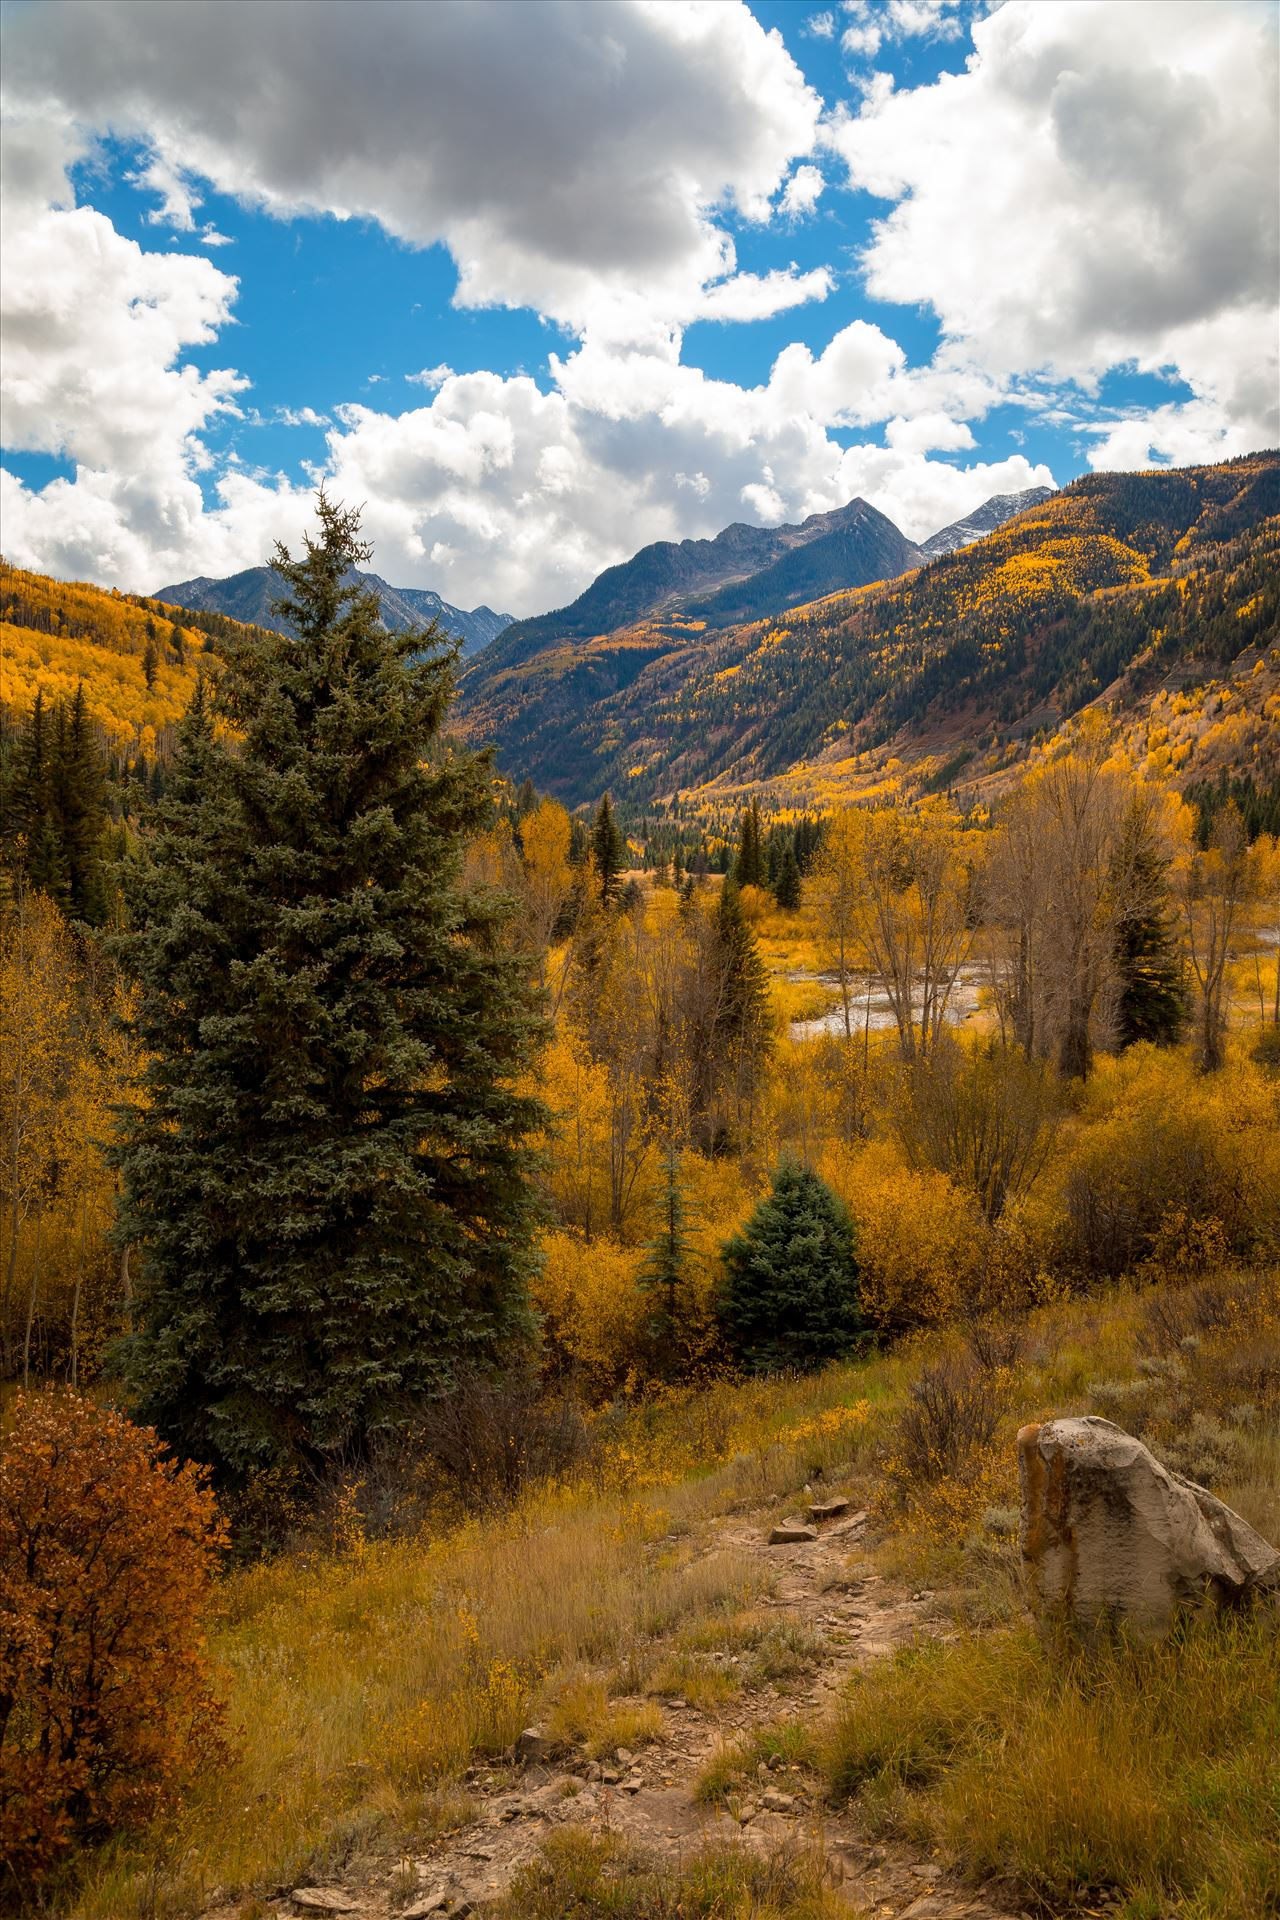 Fall Hiking Near Redstone, Colorado - A trailhead between Marble and Redstone, Colorado. by D Scott Smith